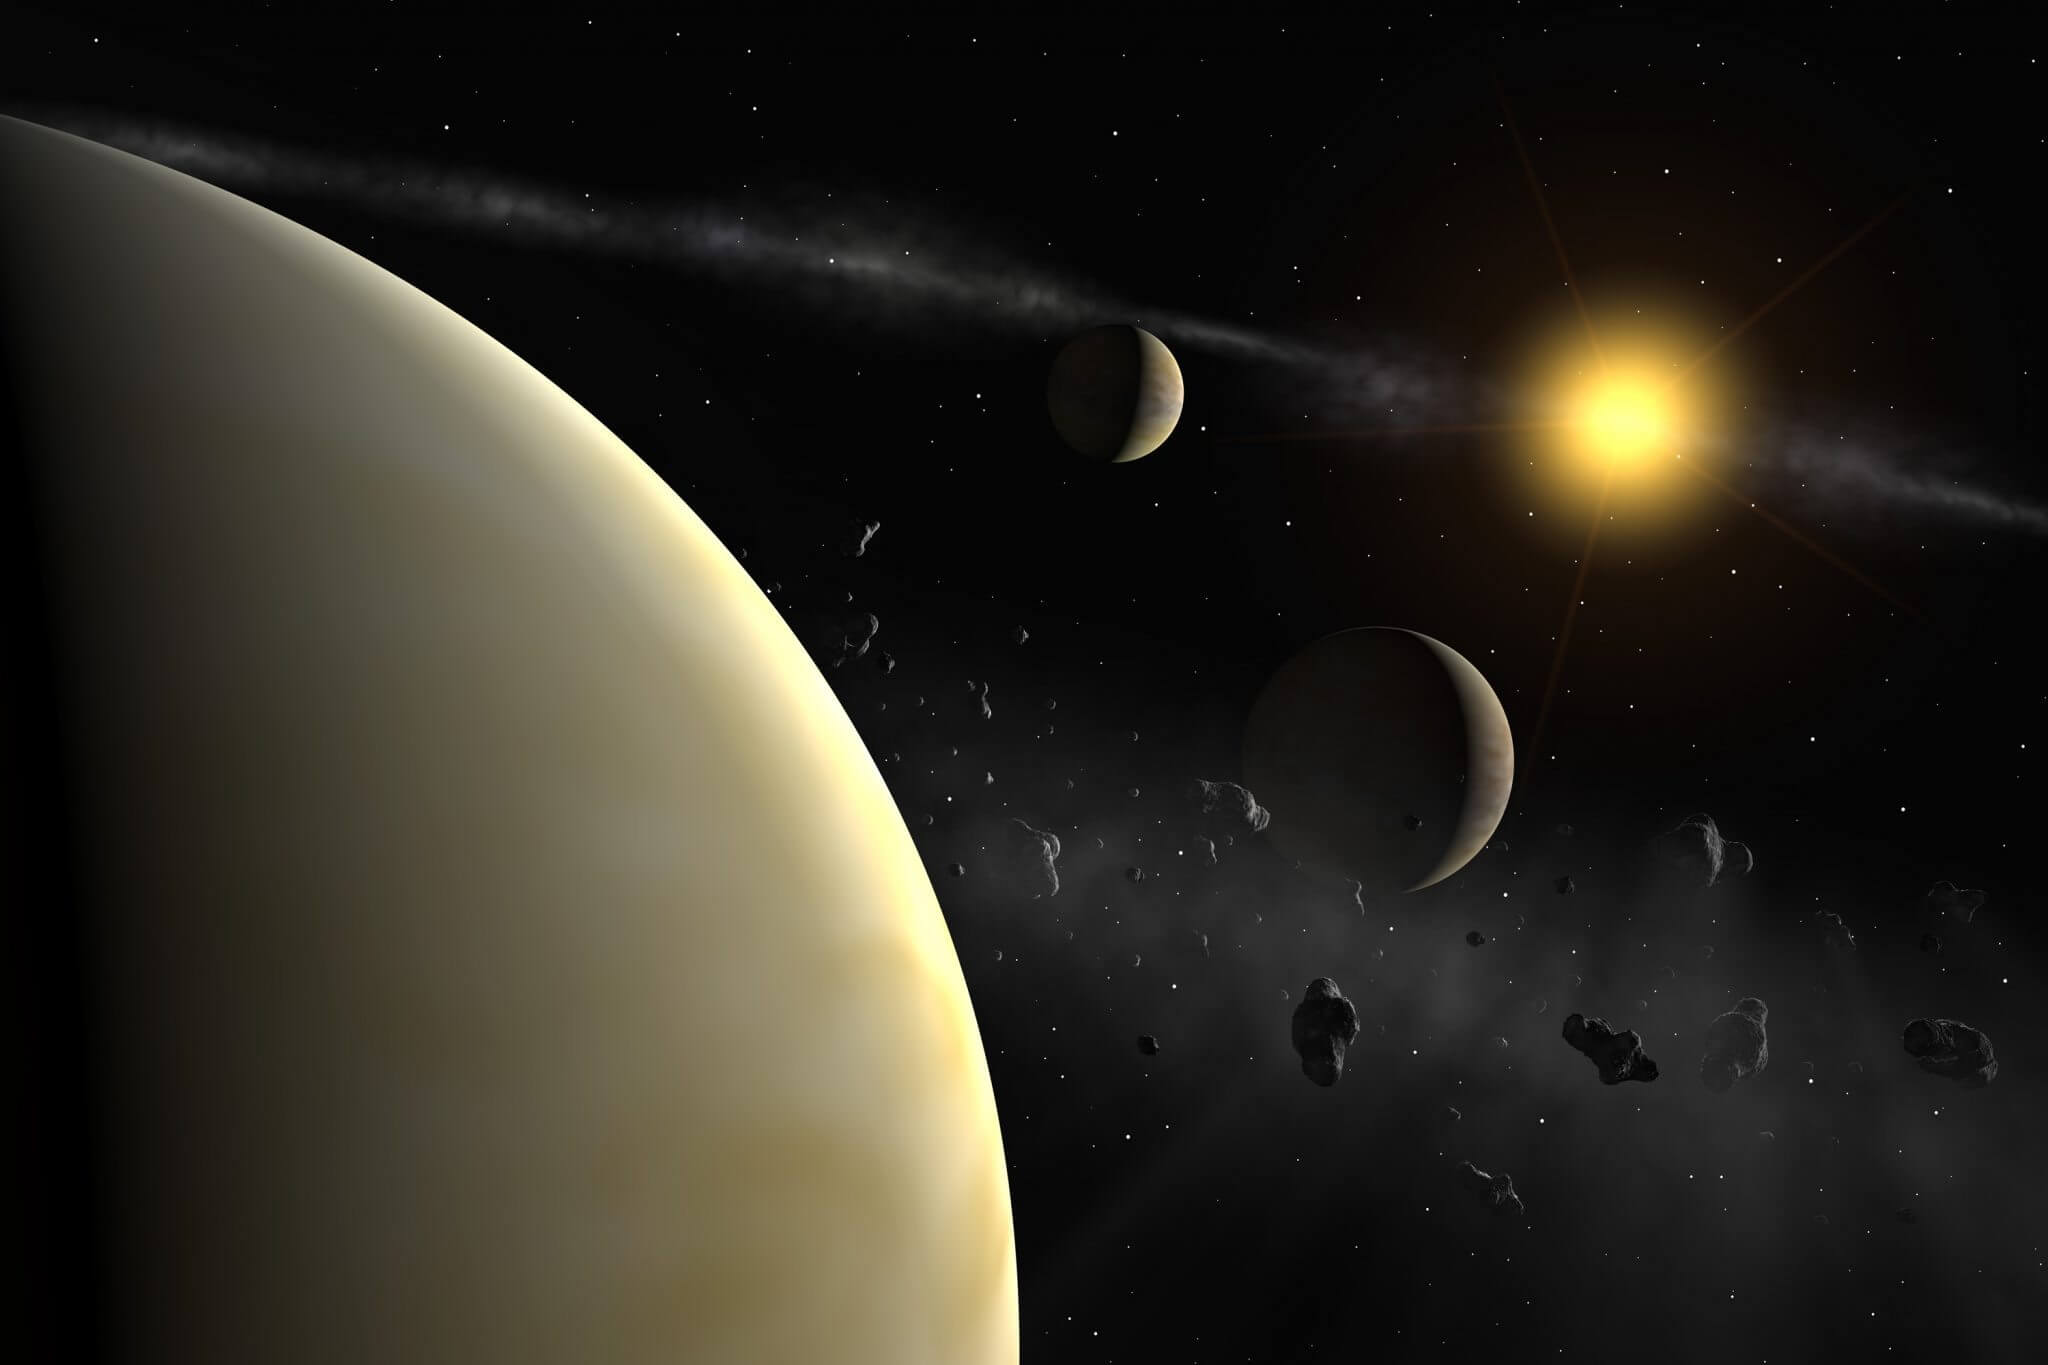 The HARPS measurement reveal the presence of three planets with masses between 10 and 18 Earth masses around HD 69830, a rather normal star slightly less massive than the Sun. The planets' mean distance are 0.08, 0.19, and 0.63 the mean distance between the Earth and the Sun. From previous observations, it seems that there exists also an asteroid belt, whose location is unknown. It could either lie between the two outermost planets, or farther from its parent star than 0.8 the mean Earth-Sun distance.